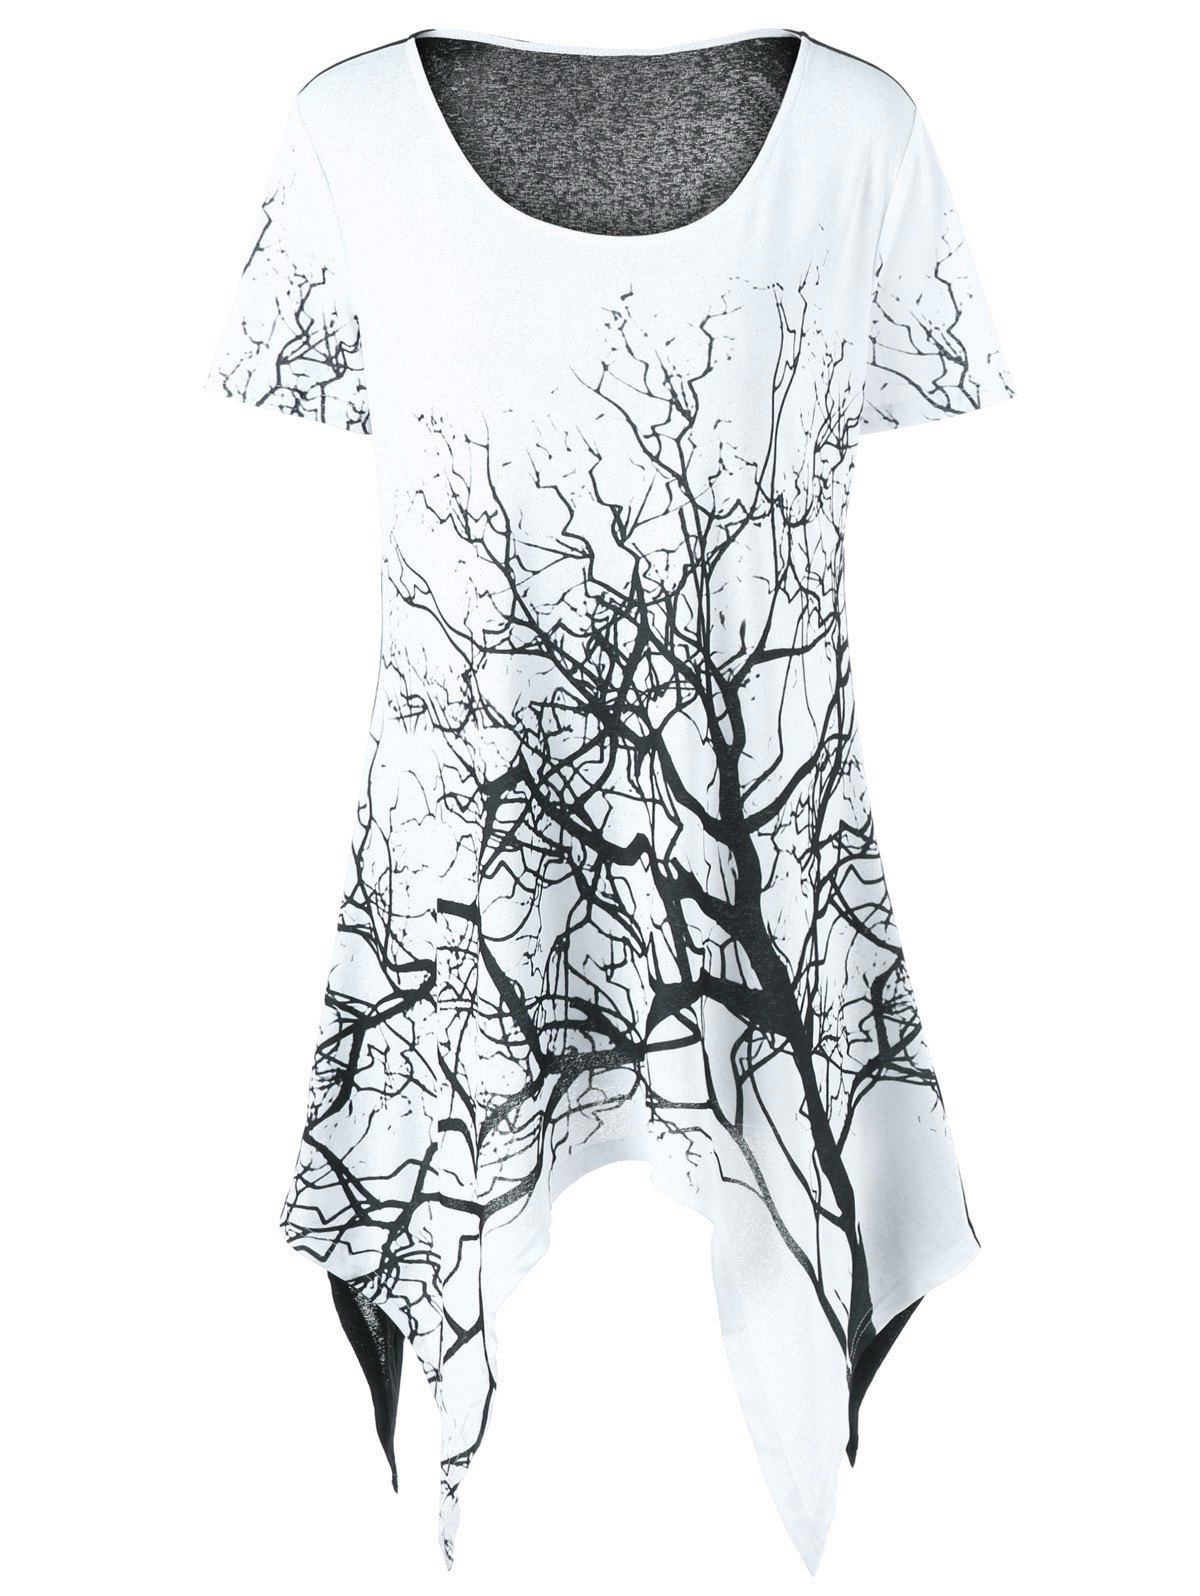 Plus Size Tree Print Asymmetrical T-ShirtWOMEN<br><br>Size: 3XL; Color: WHITE AND BLACK; Material: Polyester; Shirt Length: Long; Sleeve Length: Short; Collar: Scoop Neck; Style: Casual; Season: Summer; Pattern Type: Plant; Weight: 0.3200kg; Package Contents: 1 x T-Shirt;